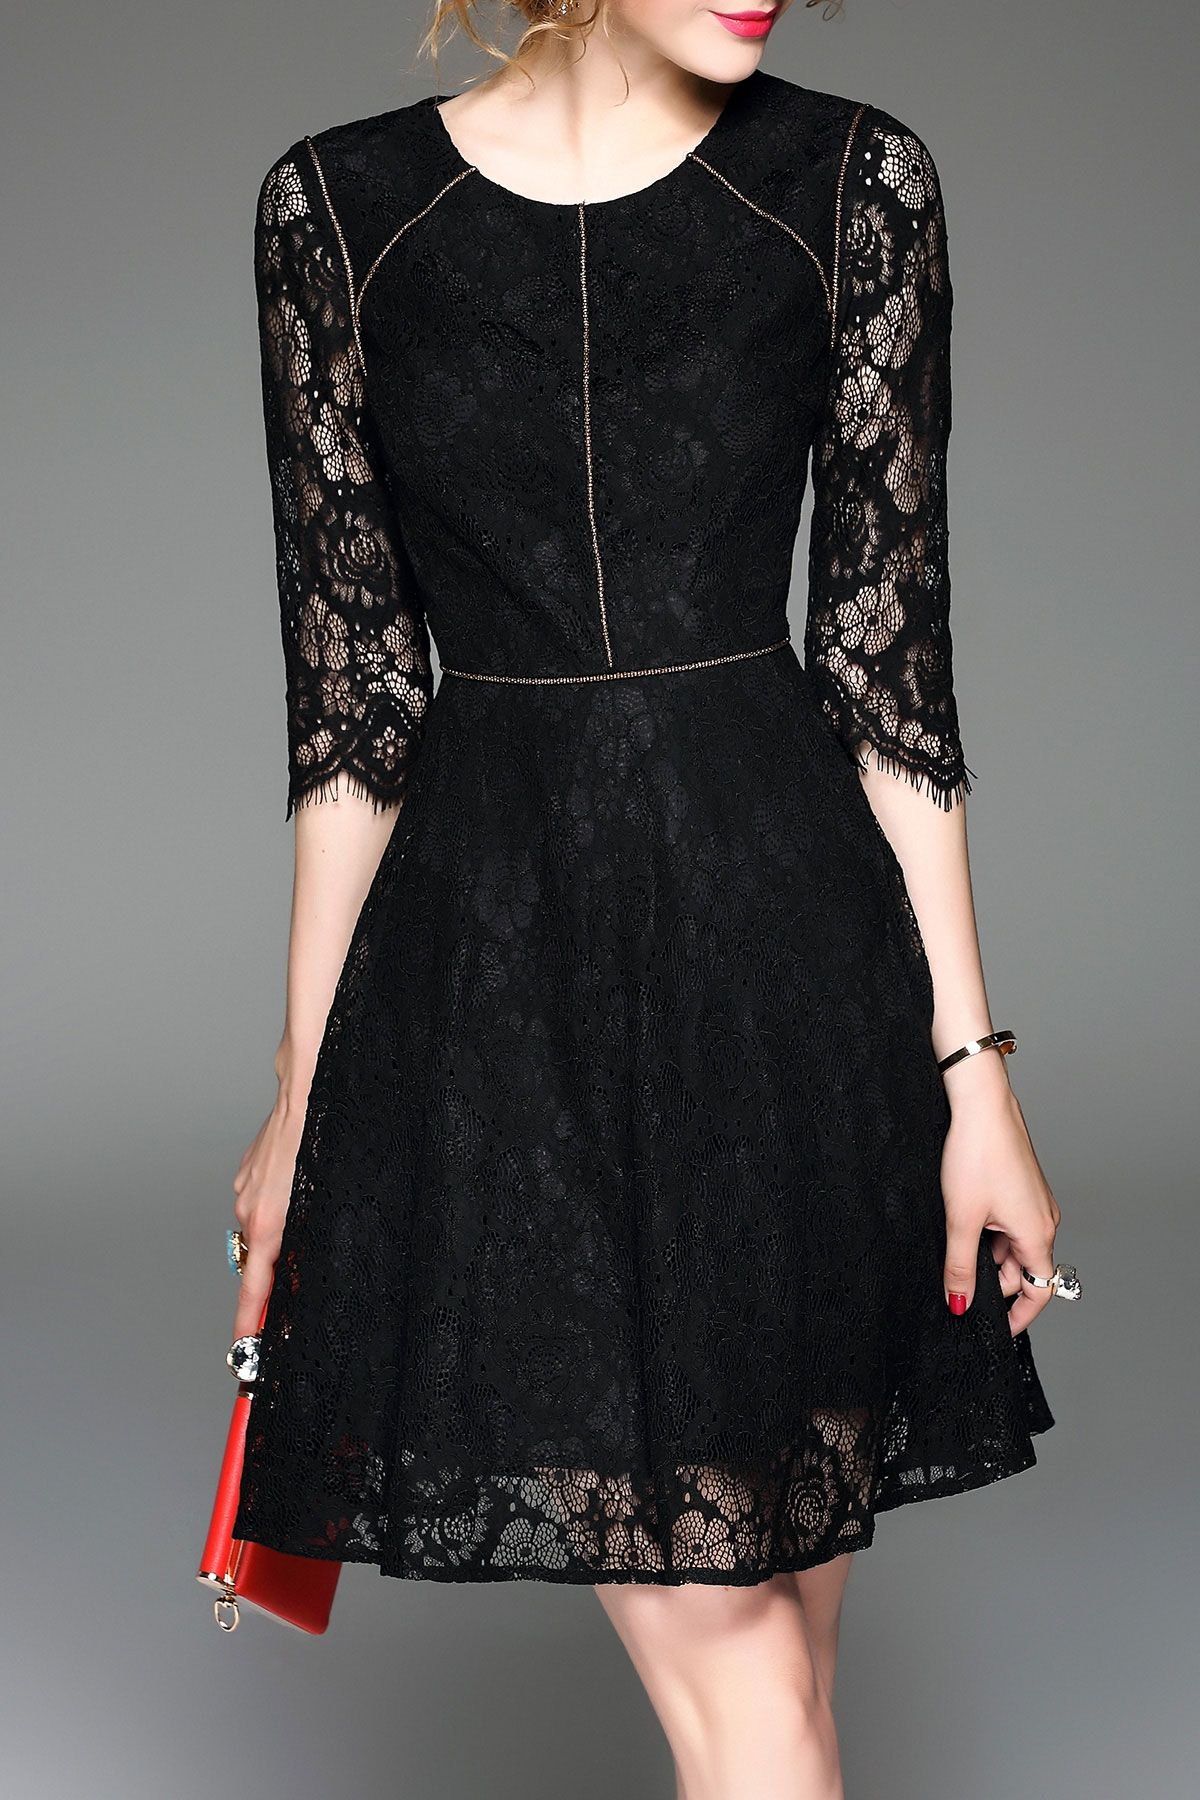 Seethrough aline lace dress lace dress shopping and black